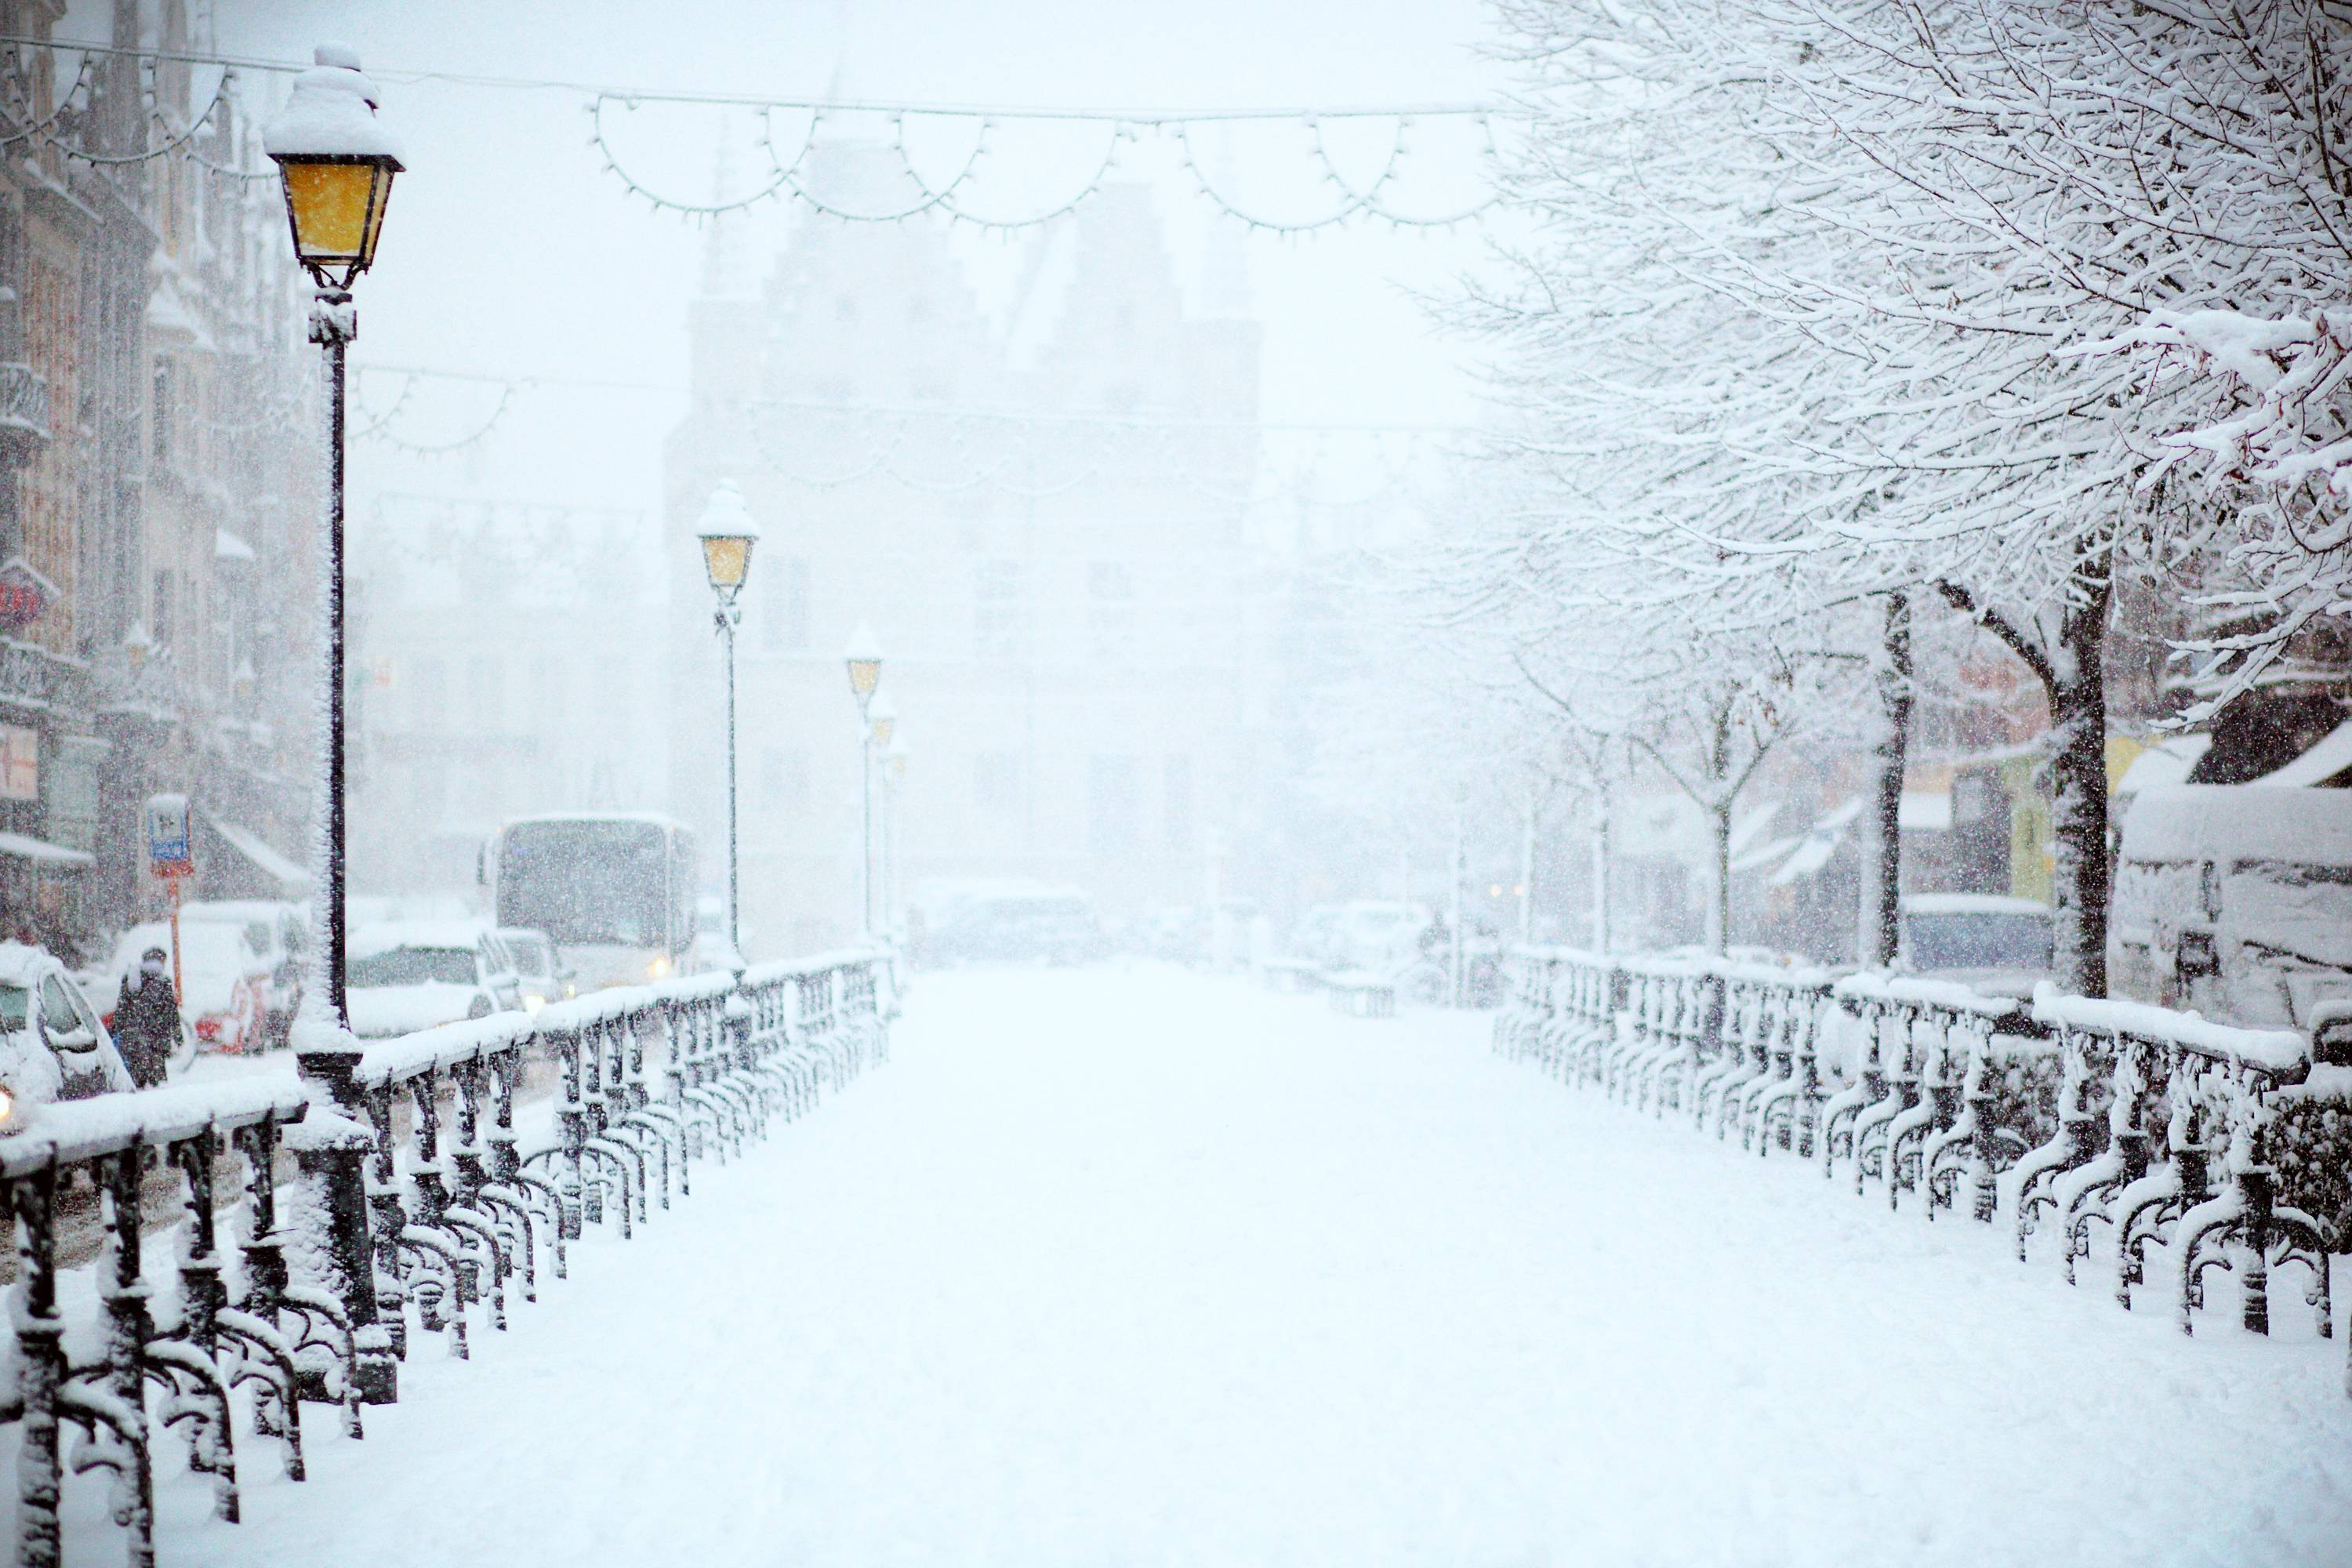 5 Things to Know About Planning Your Winter Wedding